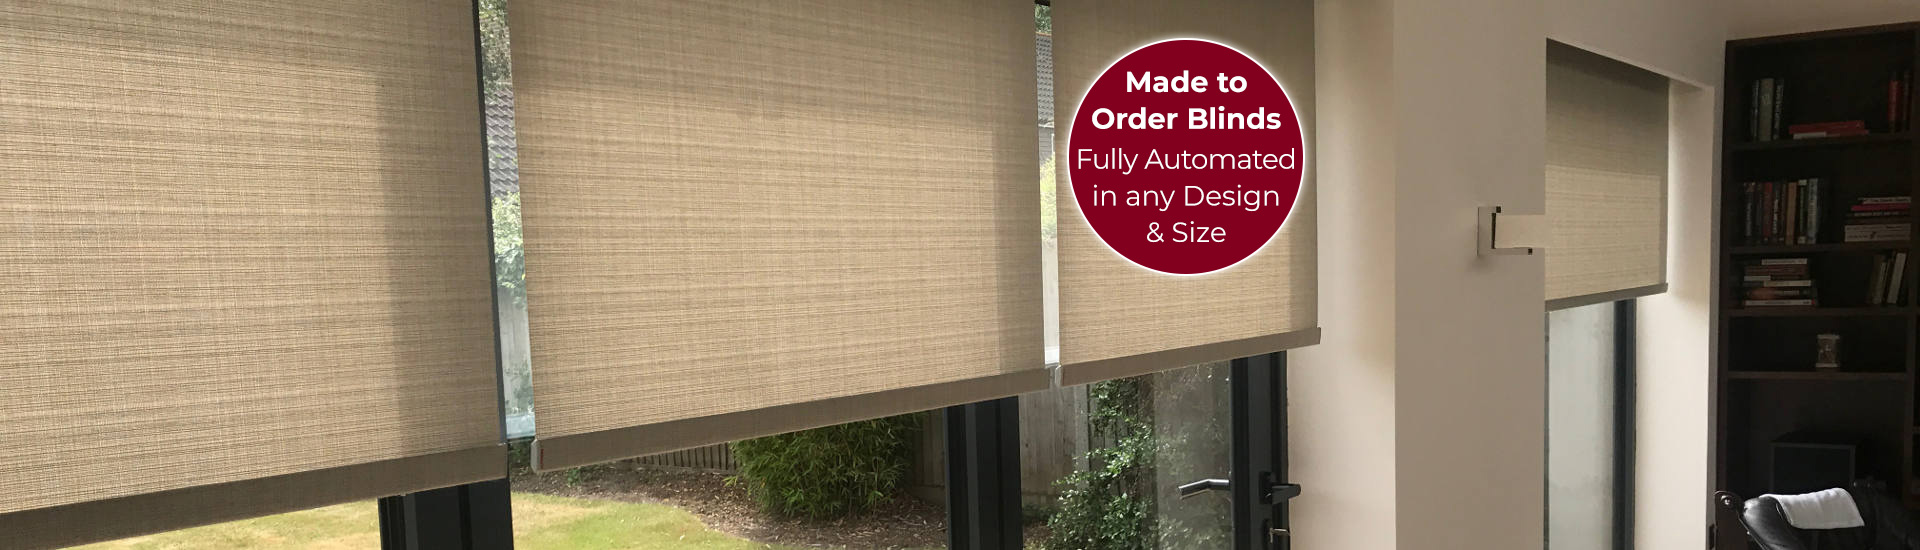 Electric Roller Blinds Banner